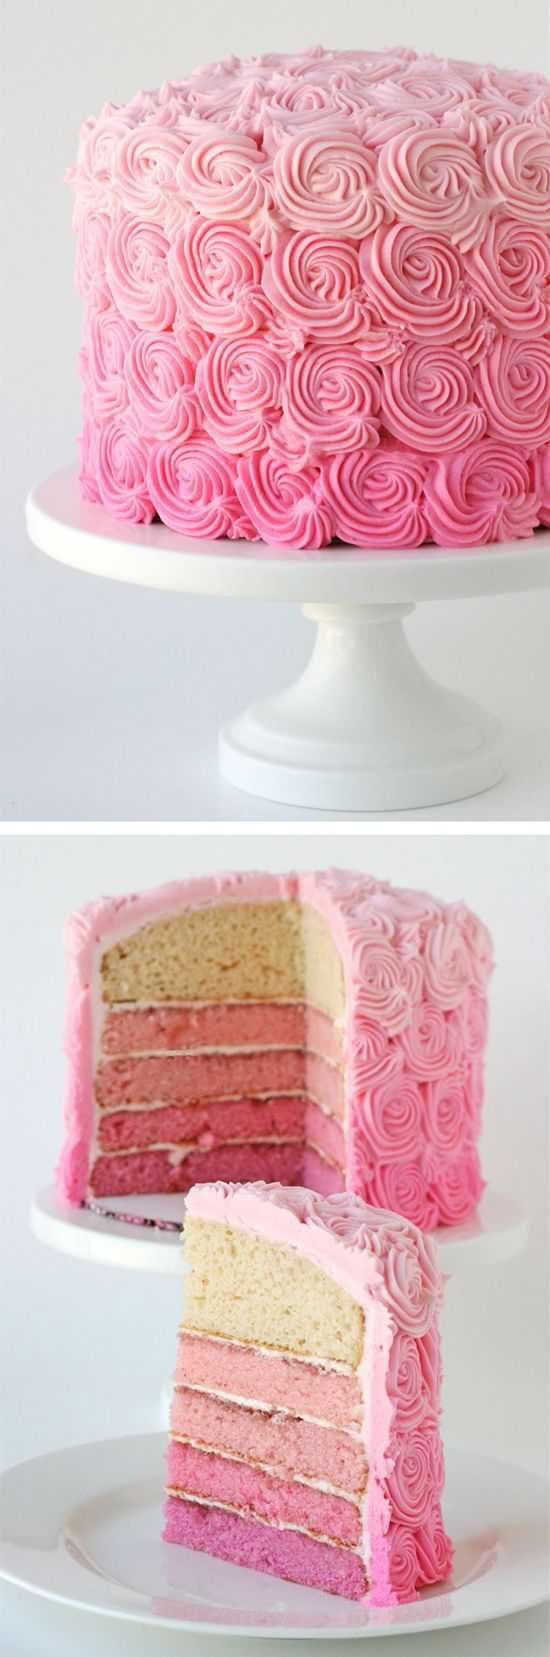 The most beautiful cake recipes